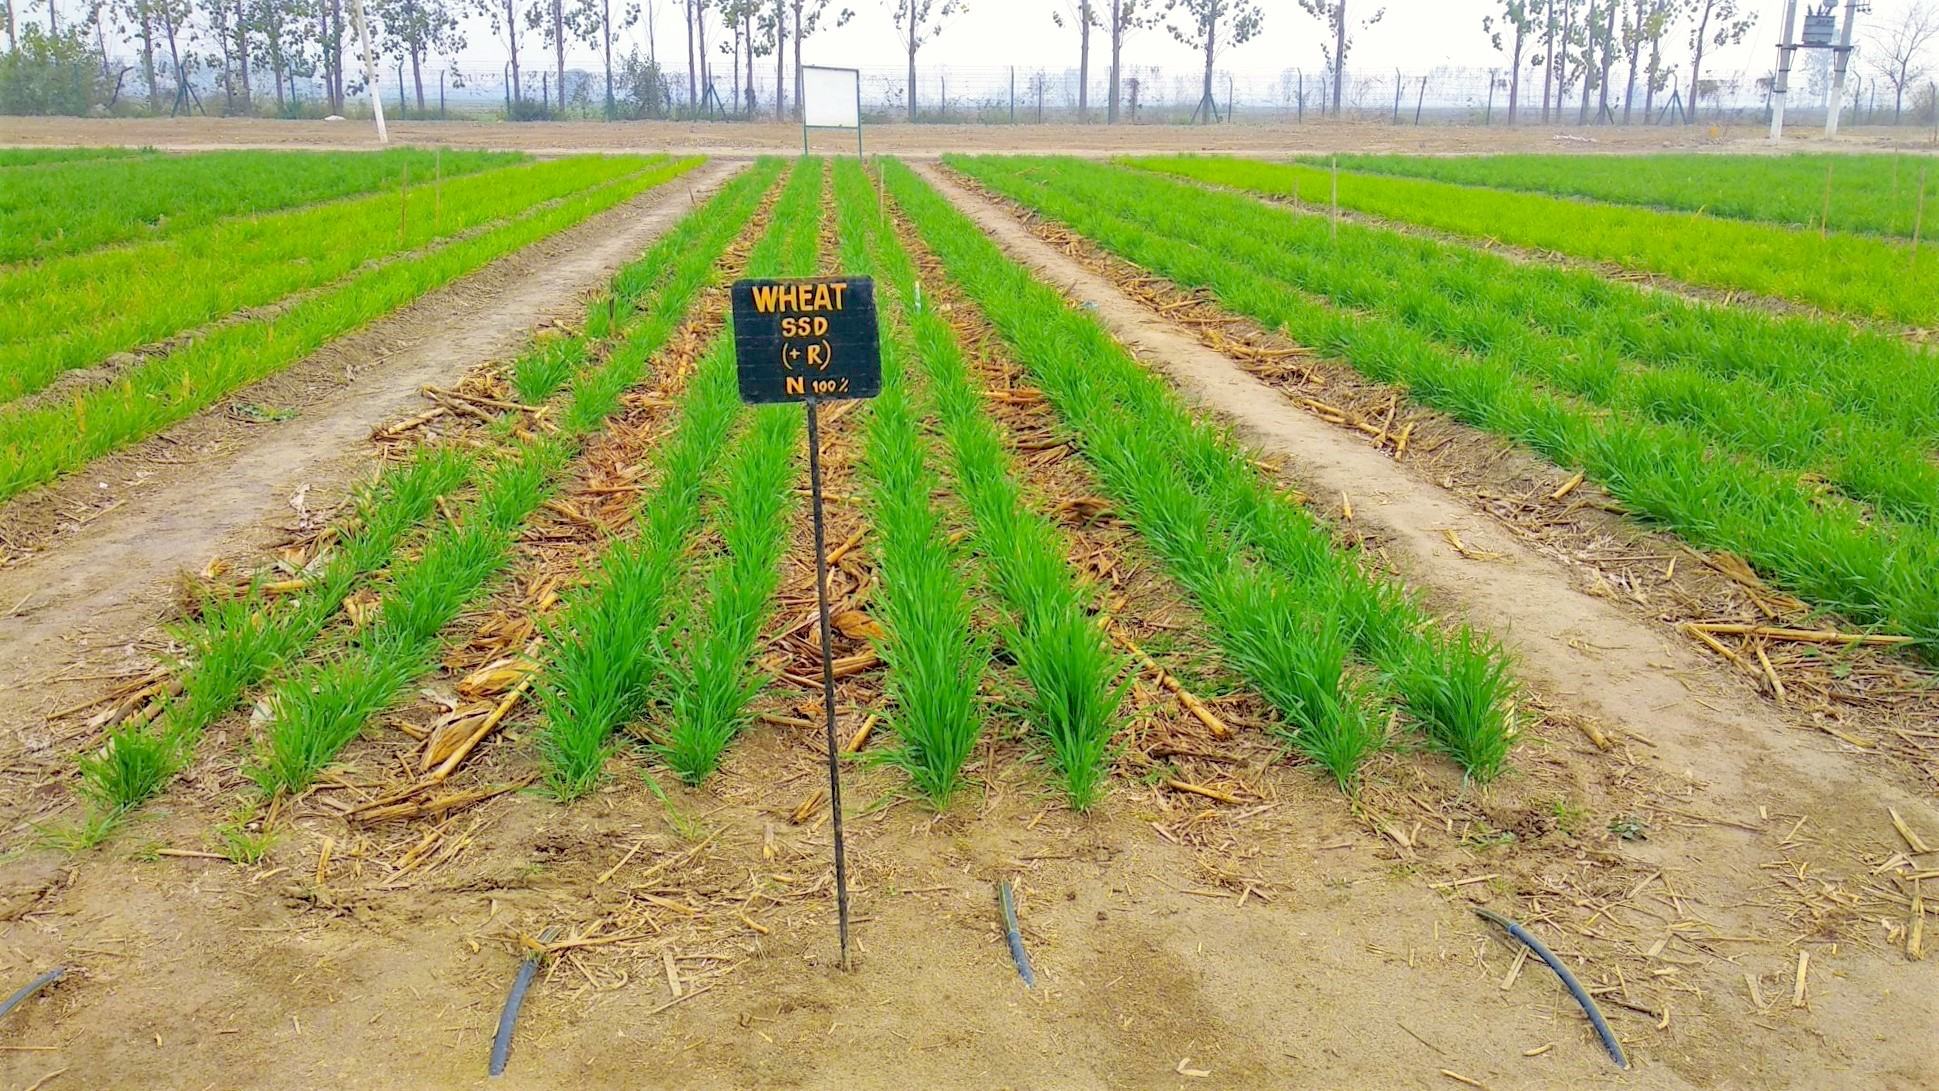 During the study, researchers used a sub-surface drip fertigation system, combined with conservation agriculture approaches, on wheat fields. (Photo: Naveen Gupta/CIMMYT)